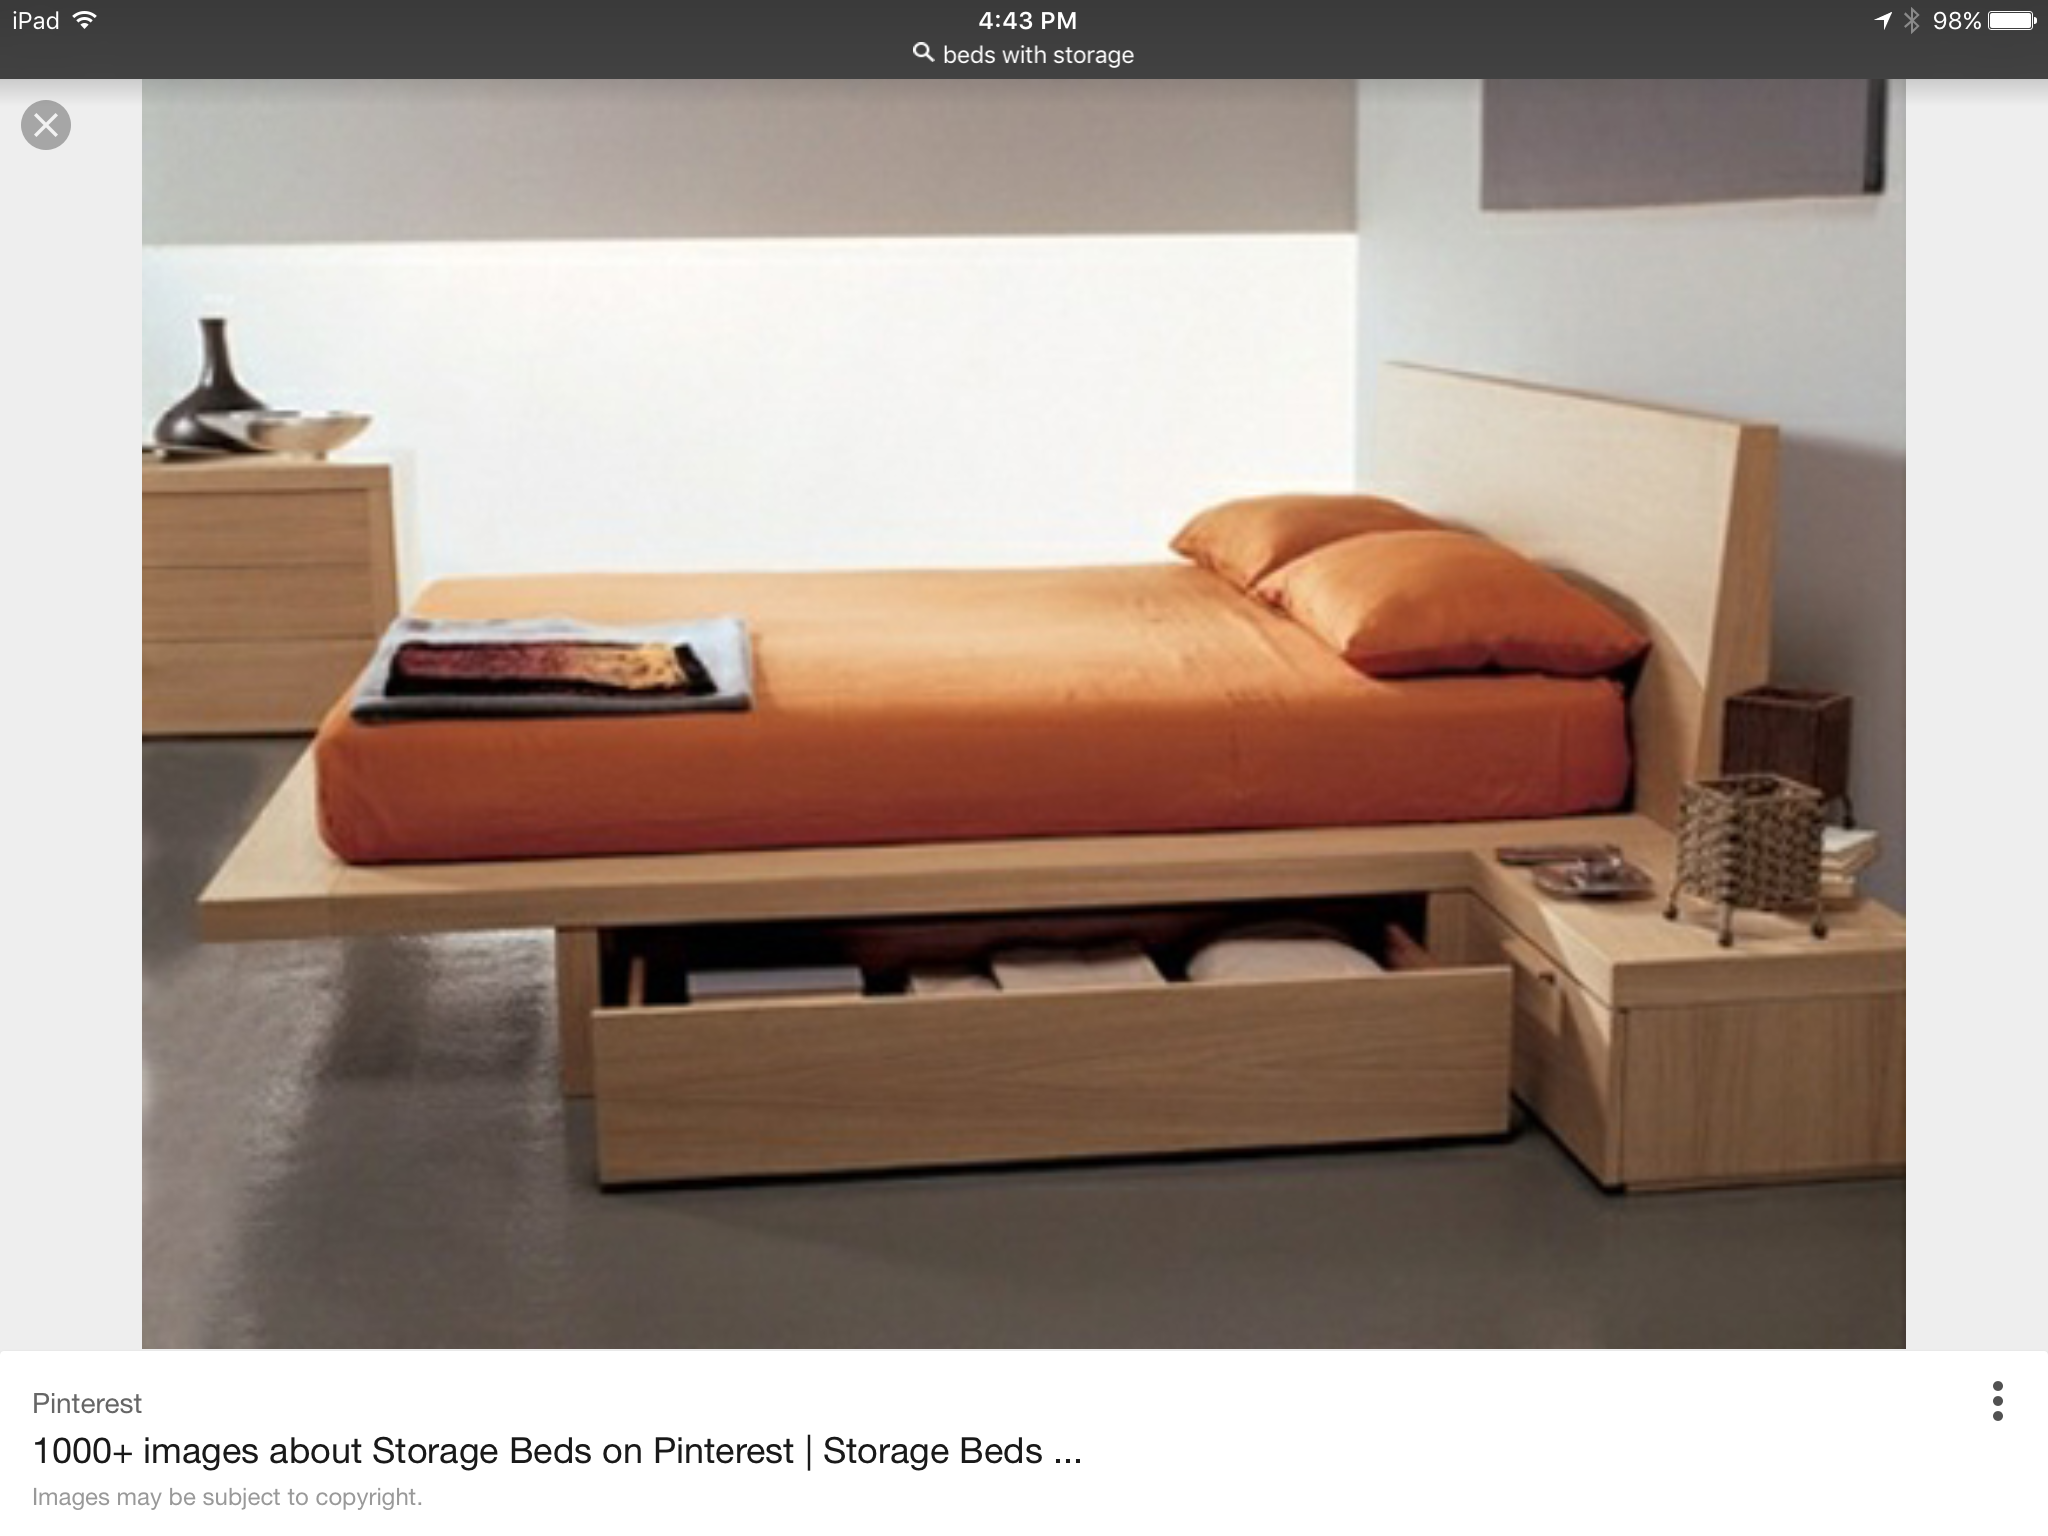 Pin by Geoff Edwards on Furniture Bed frame with storage